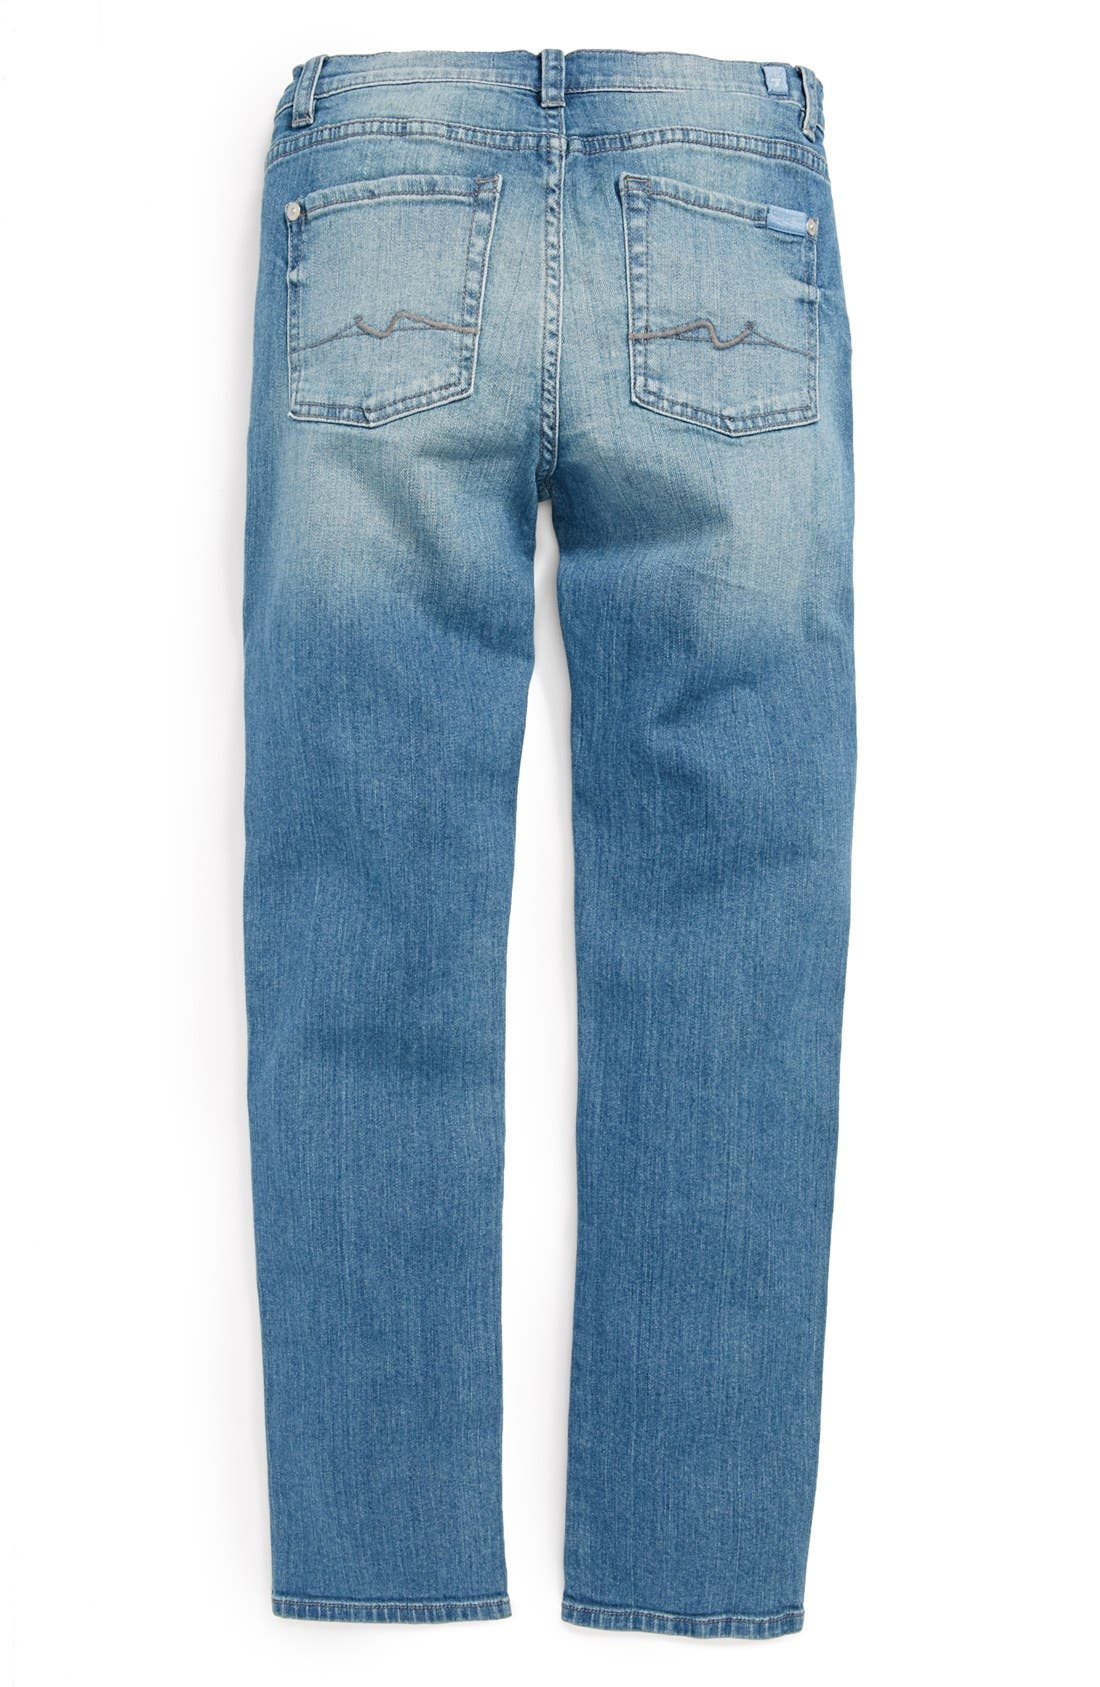 Main Image - 7 For All Mankind® 'Slimmy' Slim Fit Jeans (Big Boys)